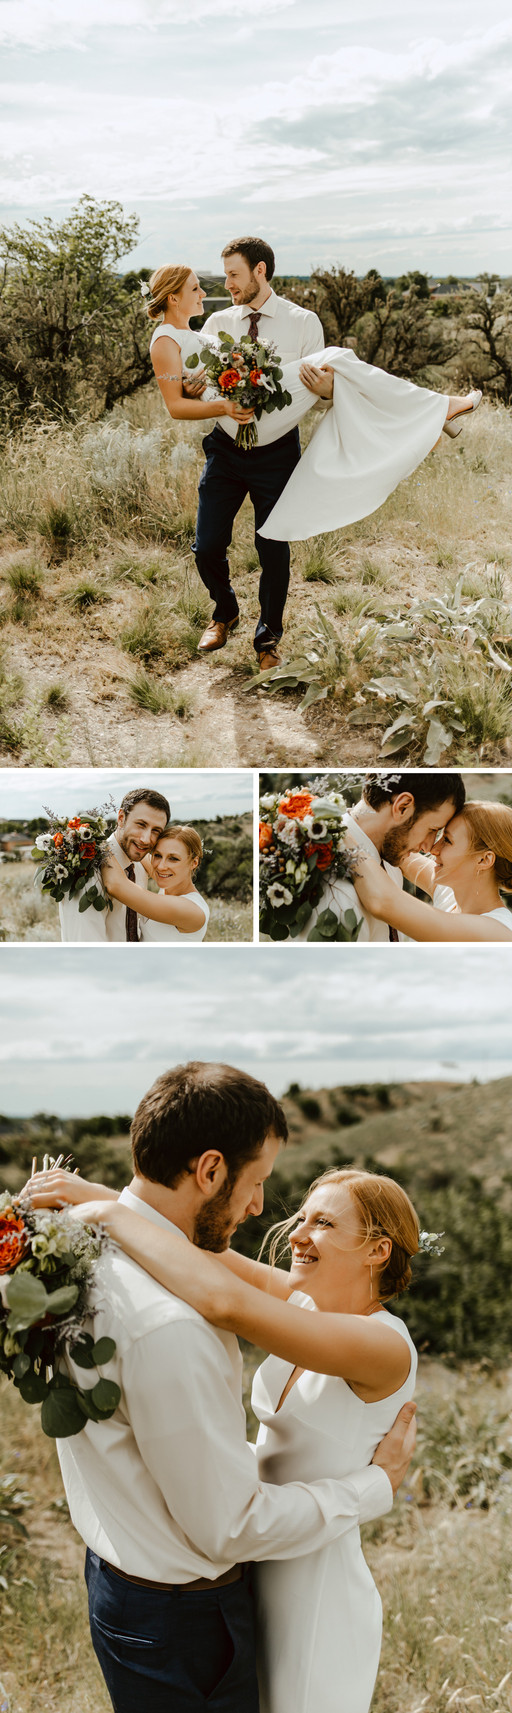 Hillary and Will posing on a mountainside for their bride and groom portraits.